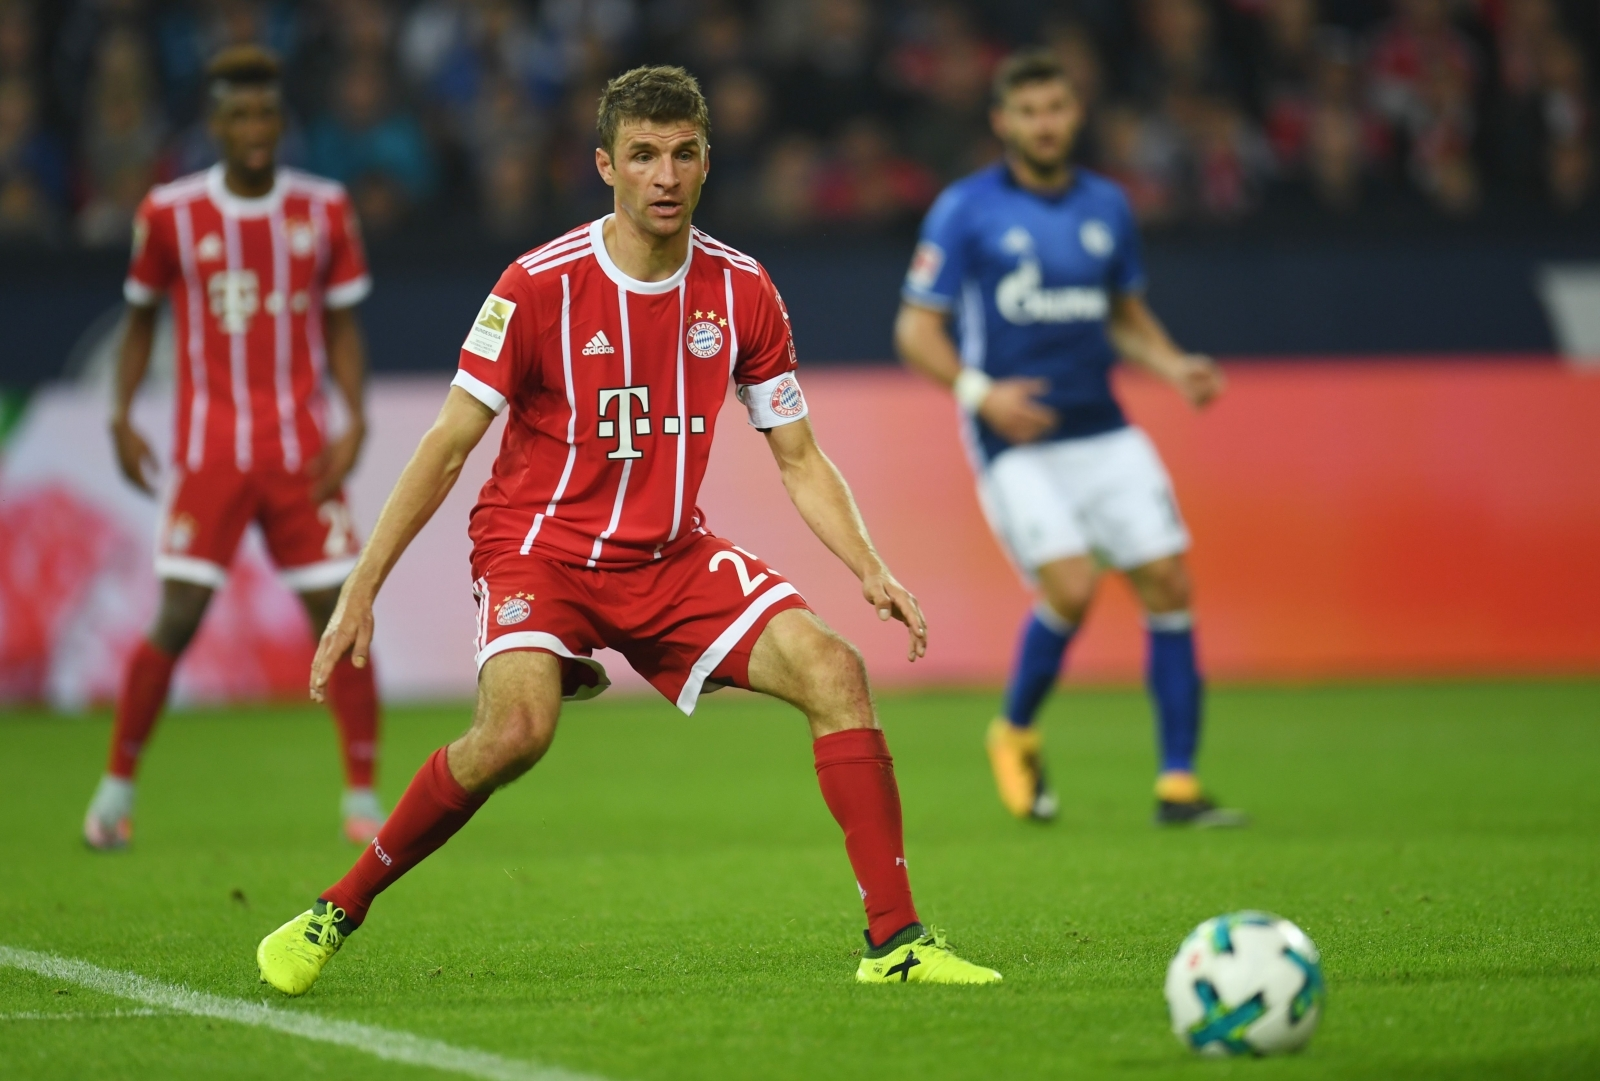 Liverpool pursued Thomas Muller as replacement for Philippe Coutinho